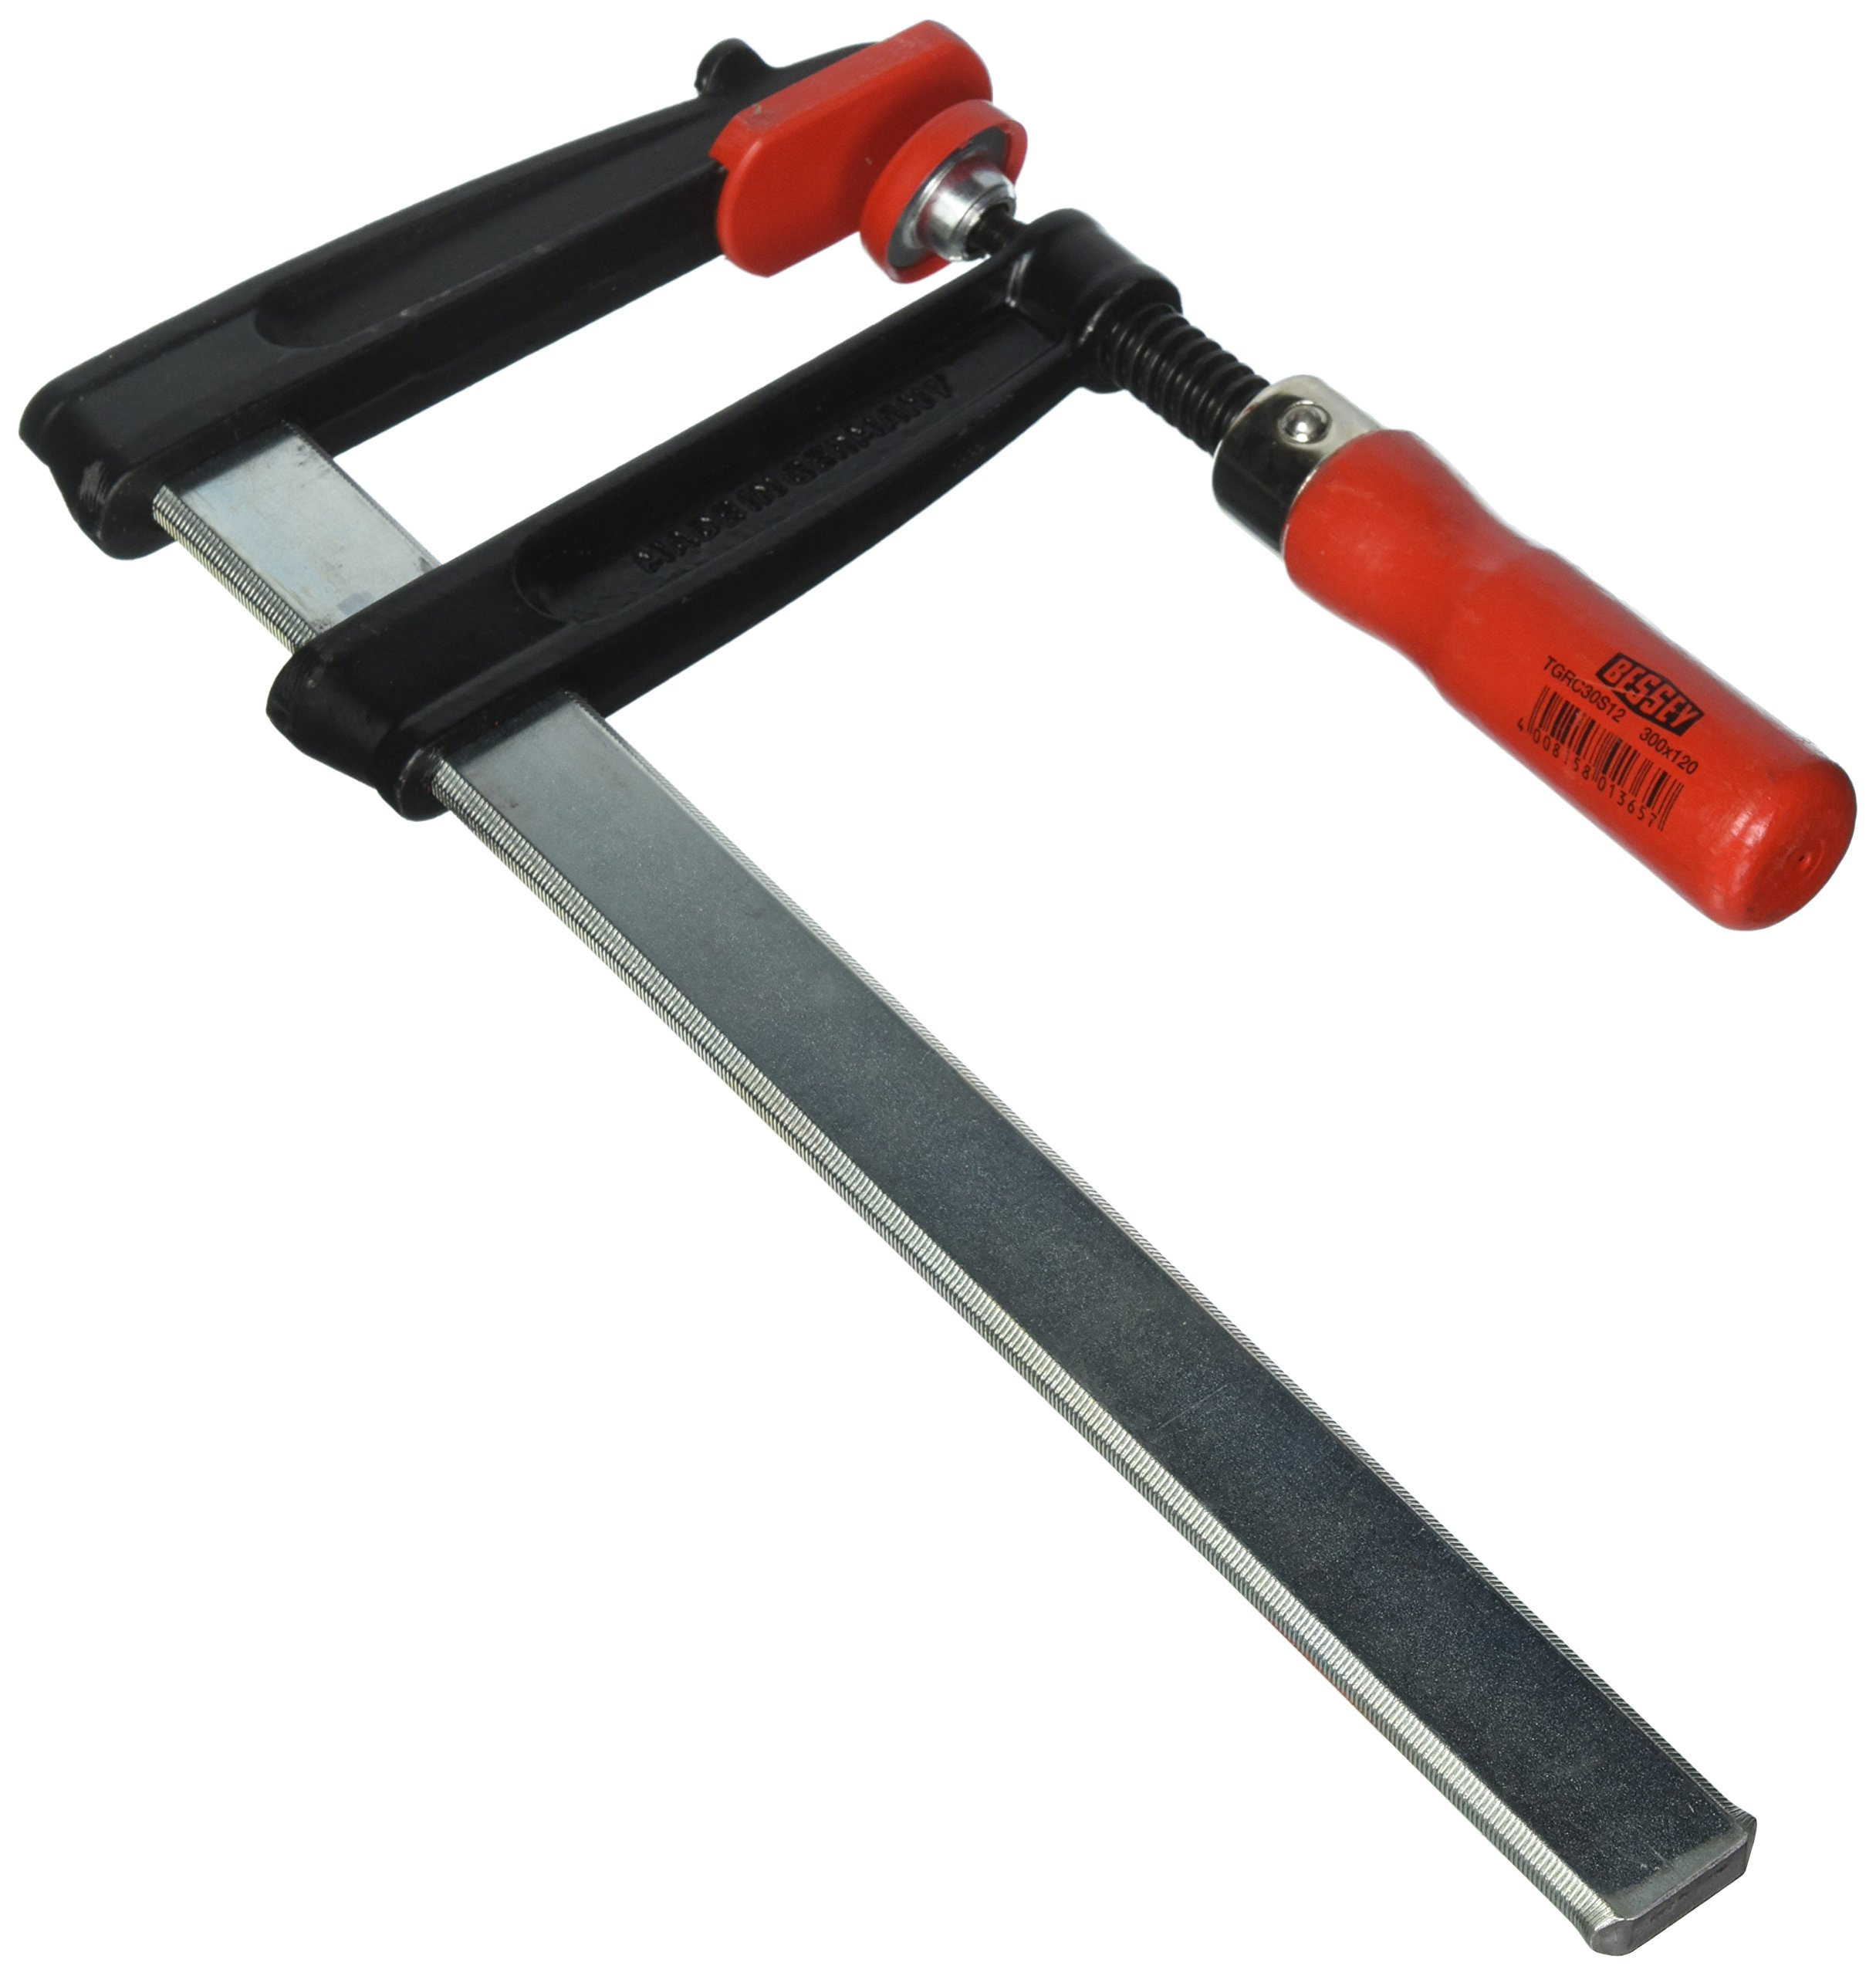 Bessey TGRC30S12 Screw Clamp Tgrc 11.81In/4.72In of Cast-IRON, Black/Red/Silver